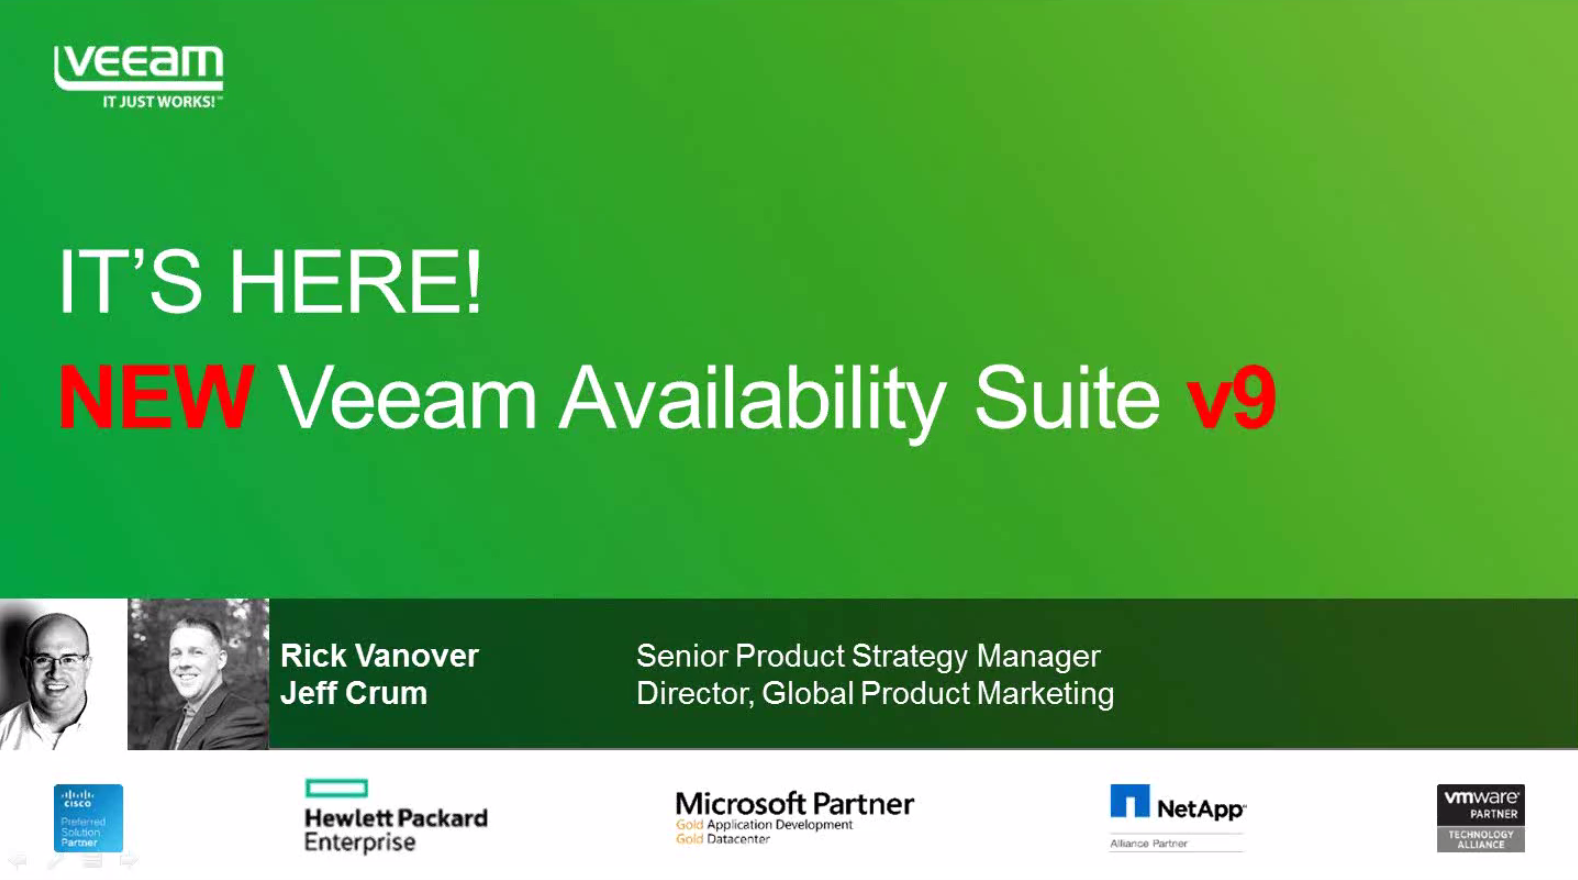 It's here! NEW Veeam Availability Suite v9!